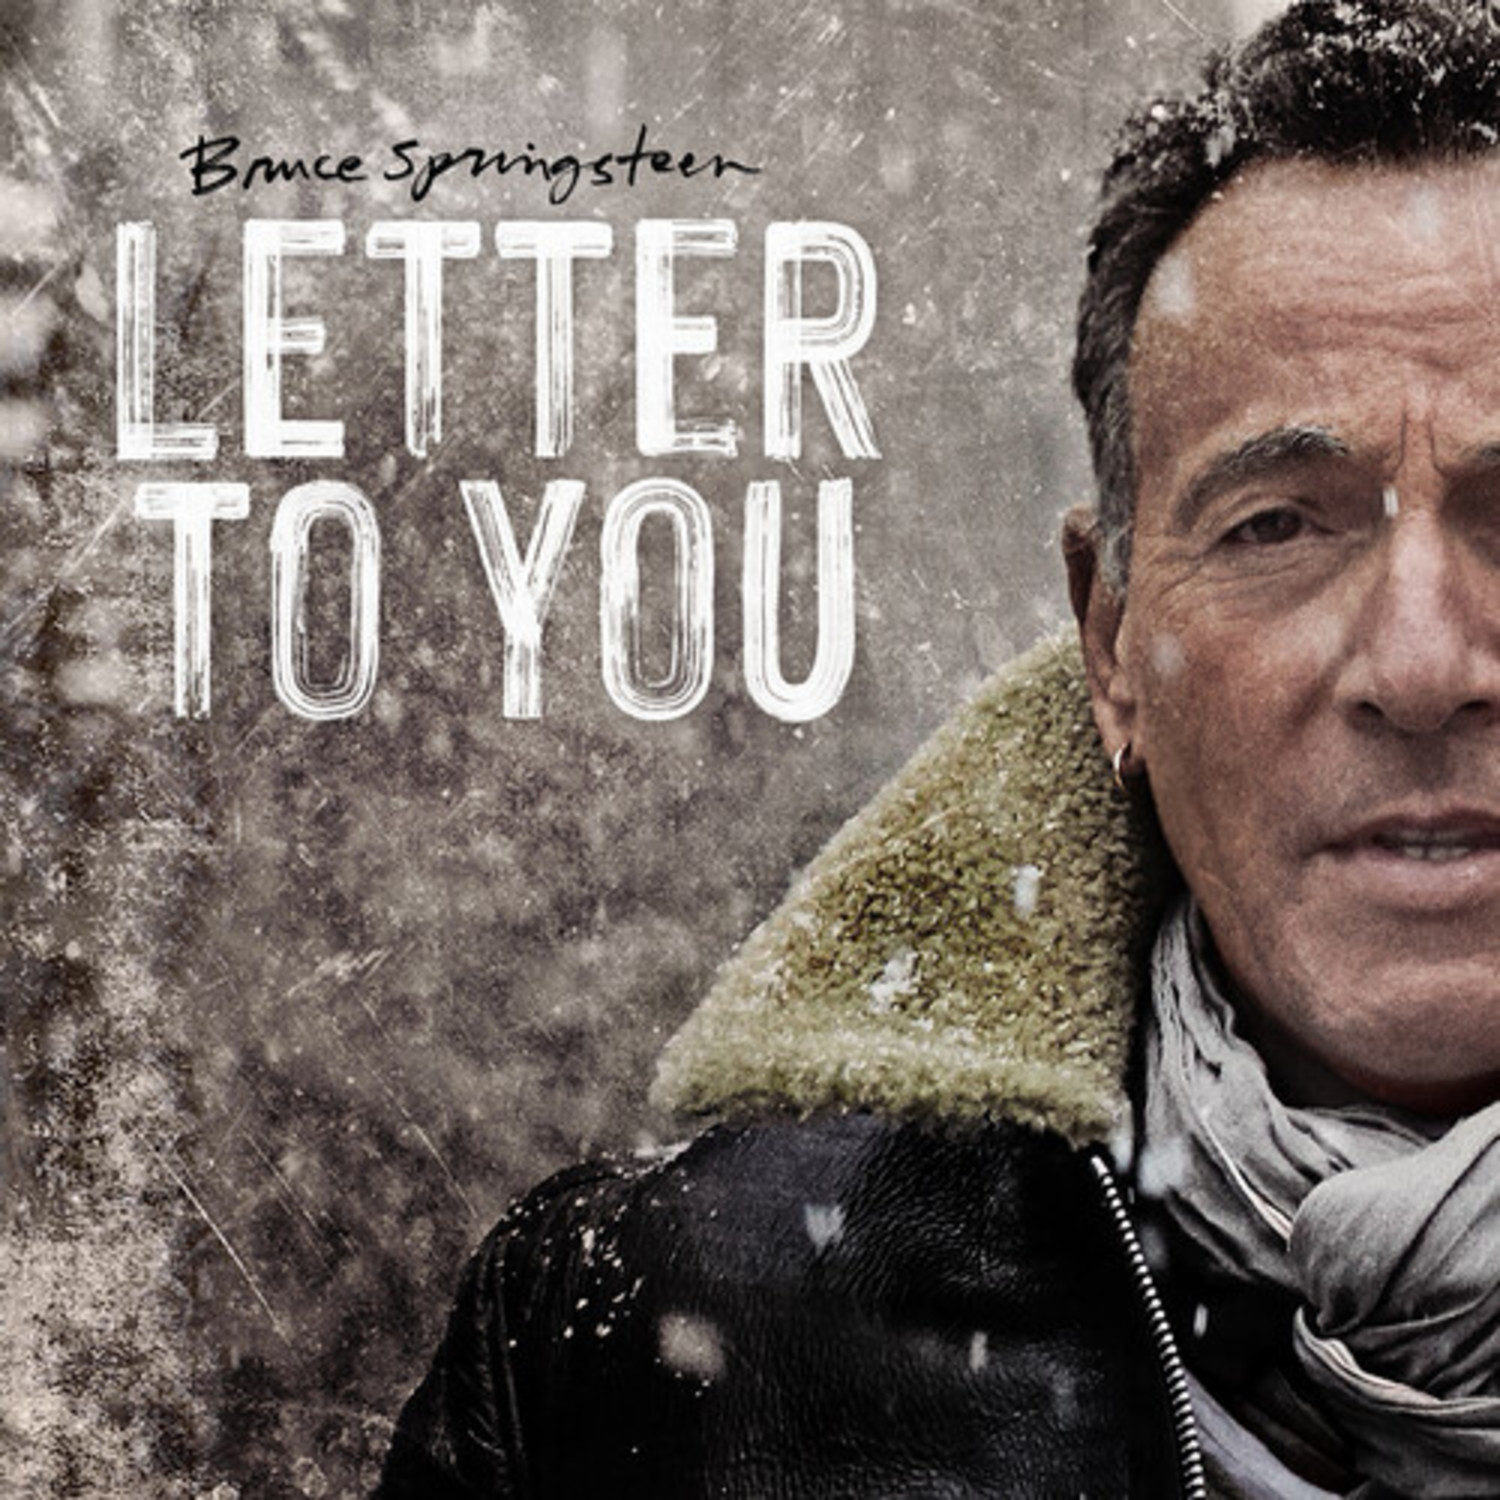 Mejor disco de 2020 - Página 3 Springsteen-bruce-letter-to-you-cd